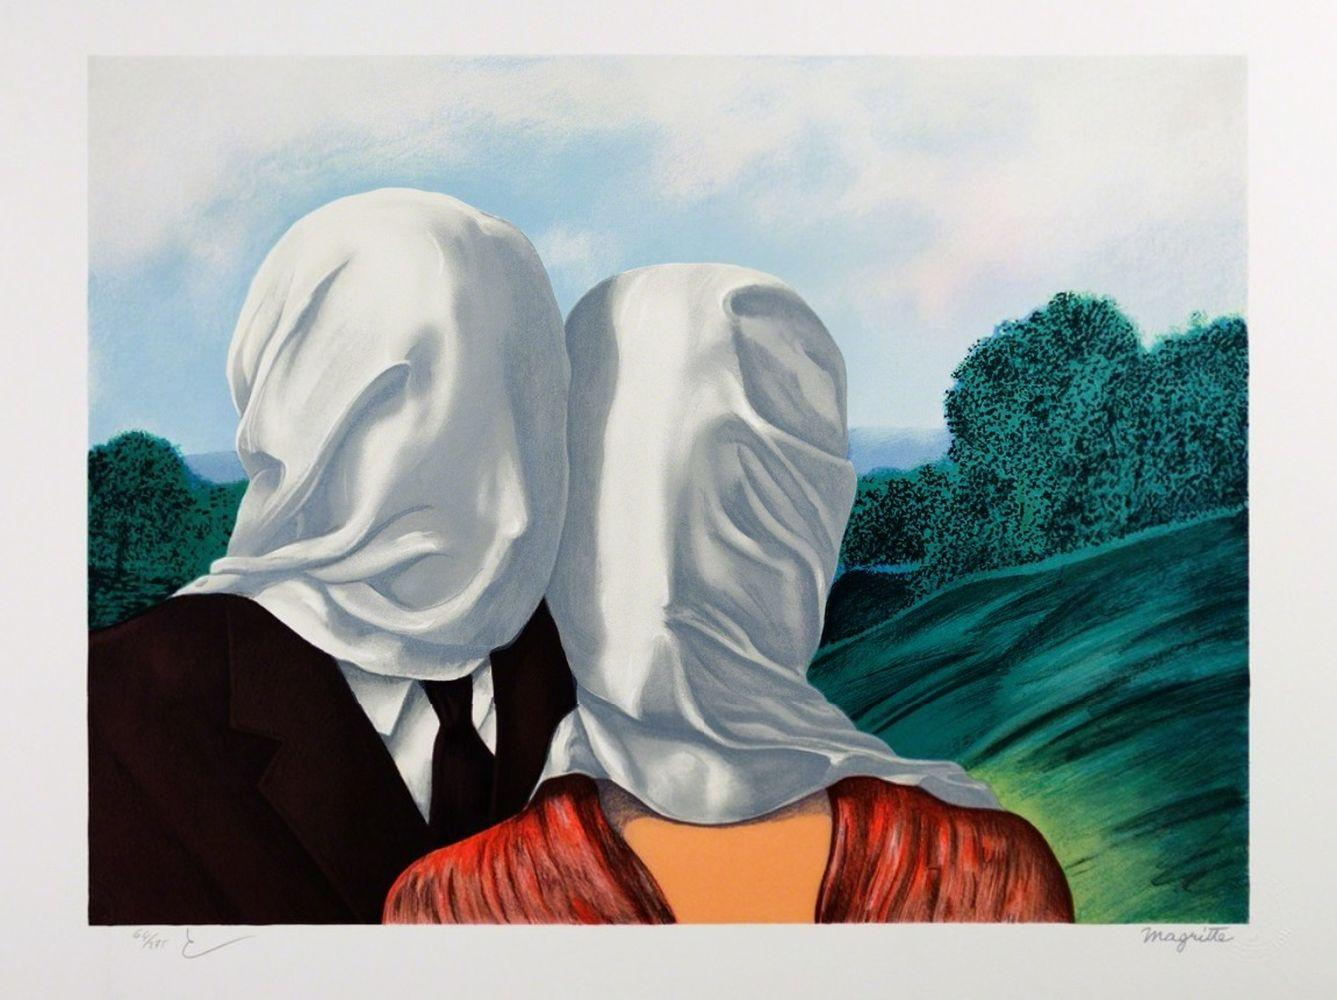 René Magritte - Les Amants MM (The Lovers)